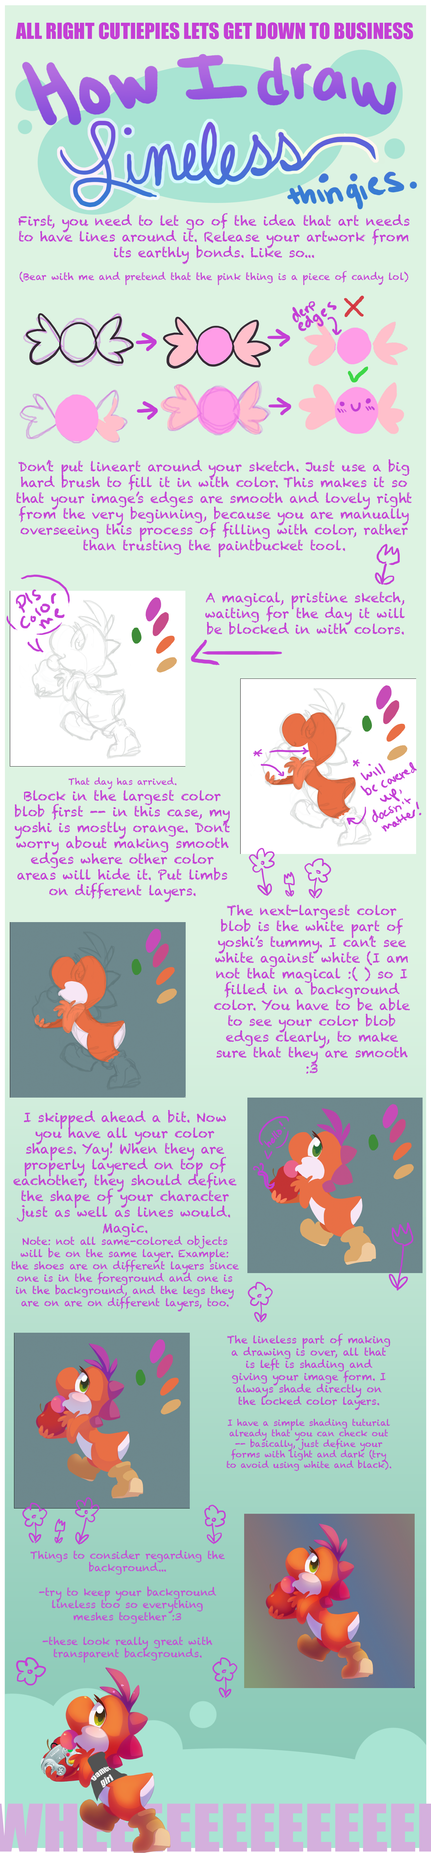 Tutorial: how I draw lineless by Celebi-Yoshi